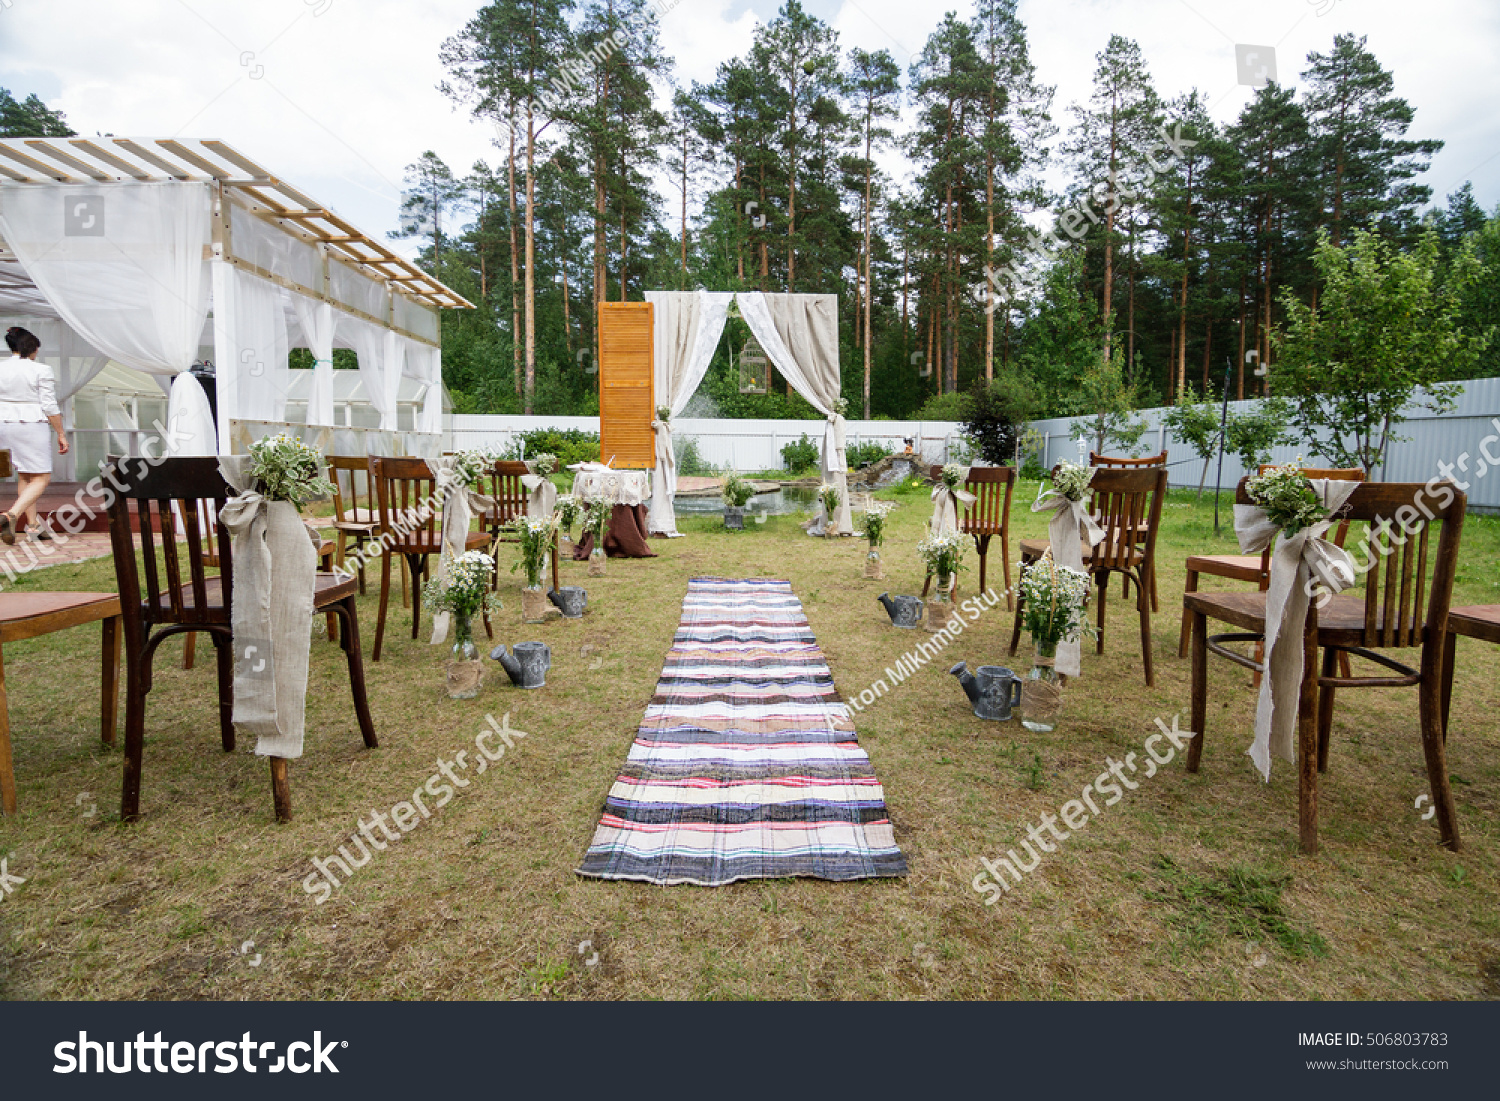 Venue Wedding Ceremony Rustic Style Retro Stock Photo Image